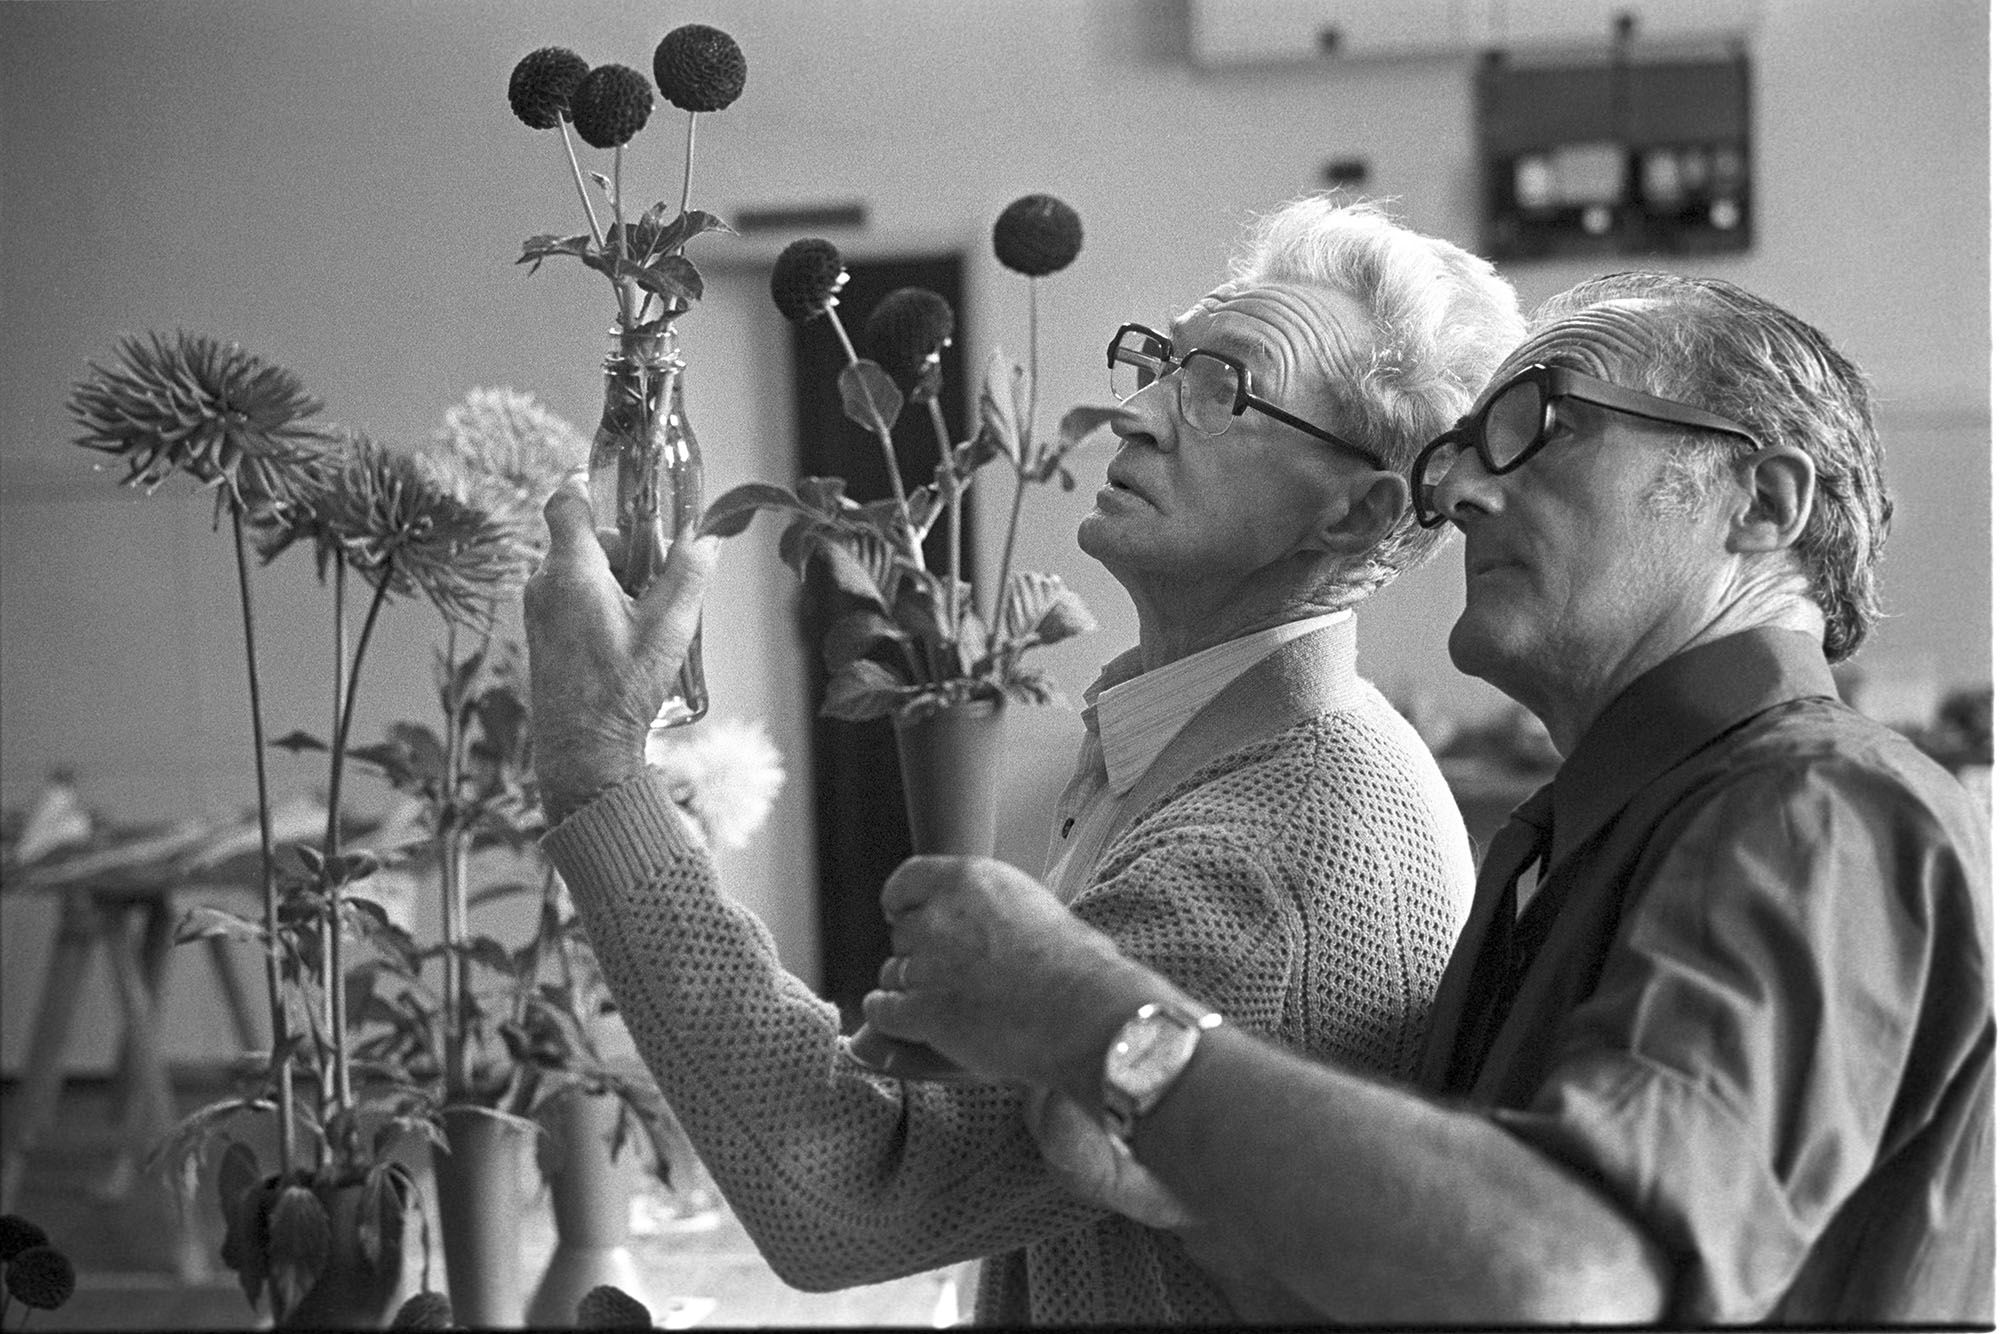 Judges at Conservative Flower Show, flowers.<br /> [Two men holding vases of flowers aloft, to judge entries at the Hatherleigh Conservative Club Flower Show.]